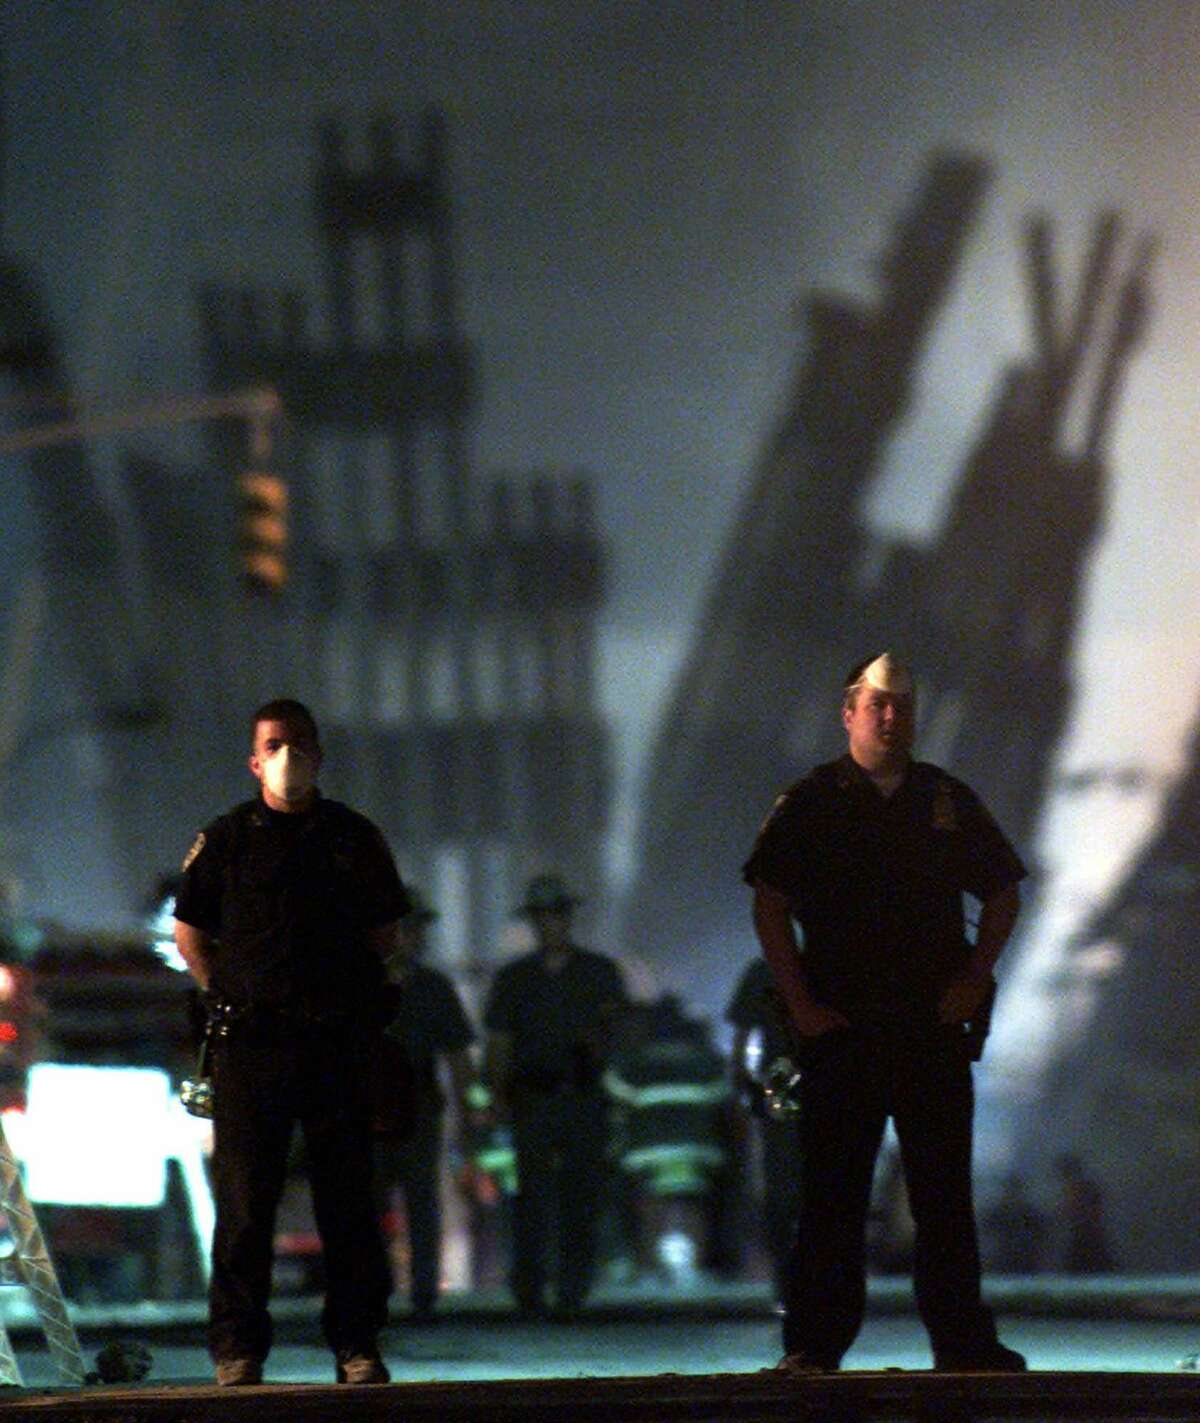 Police officers stand guard near the site of the World Trade Center in New York, in this Sept. 12, 2001, file photo.